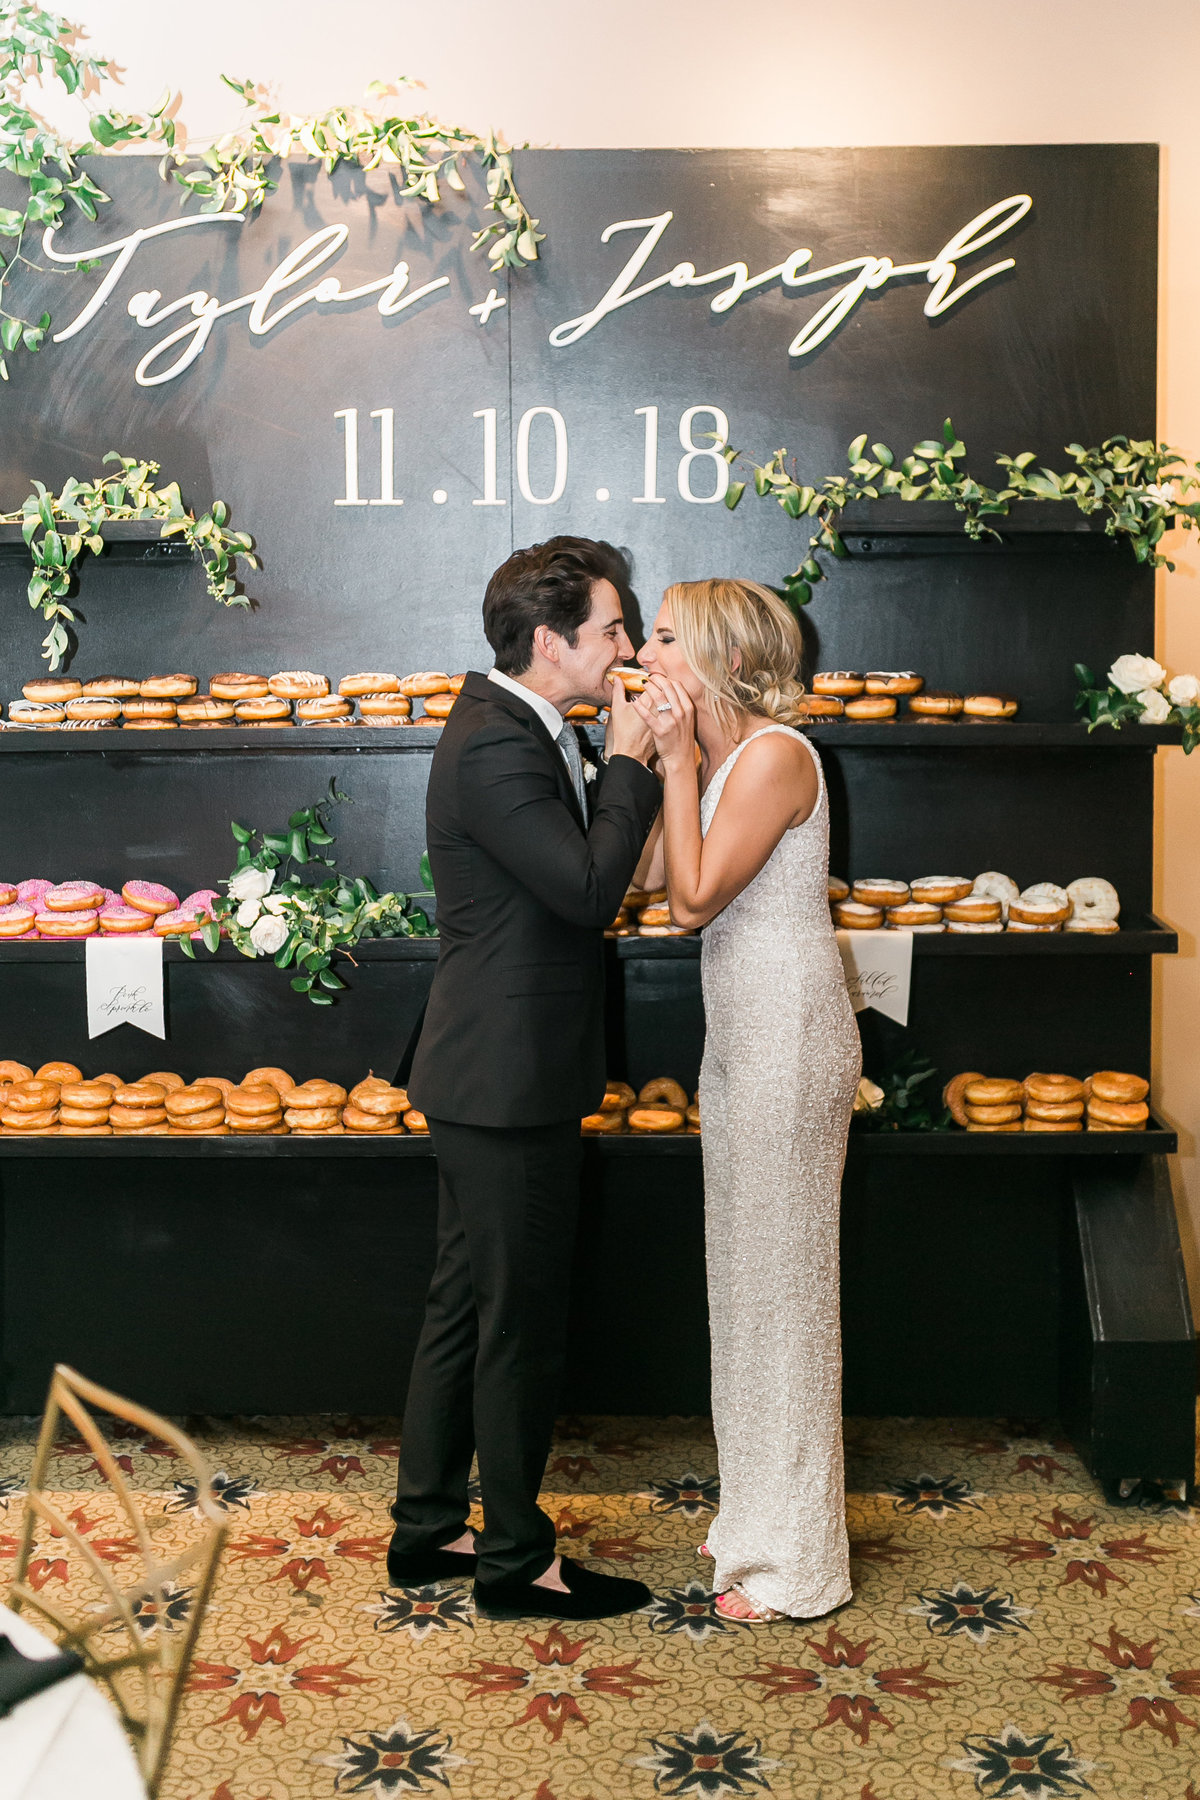 wedding donut wall at Red Rock Country Club in Las Vegas